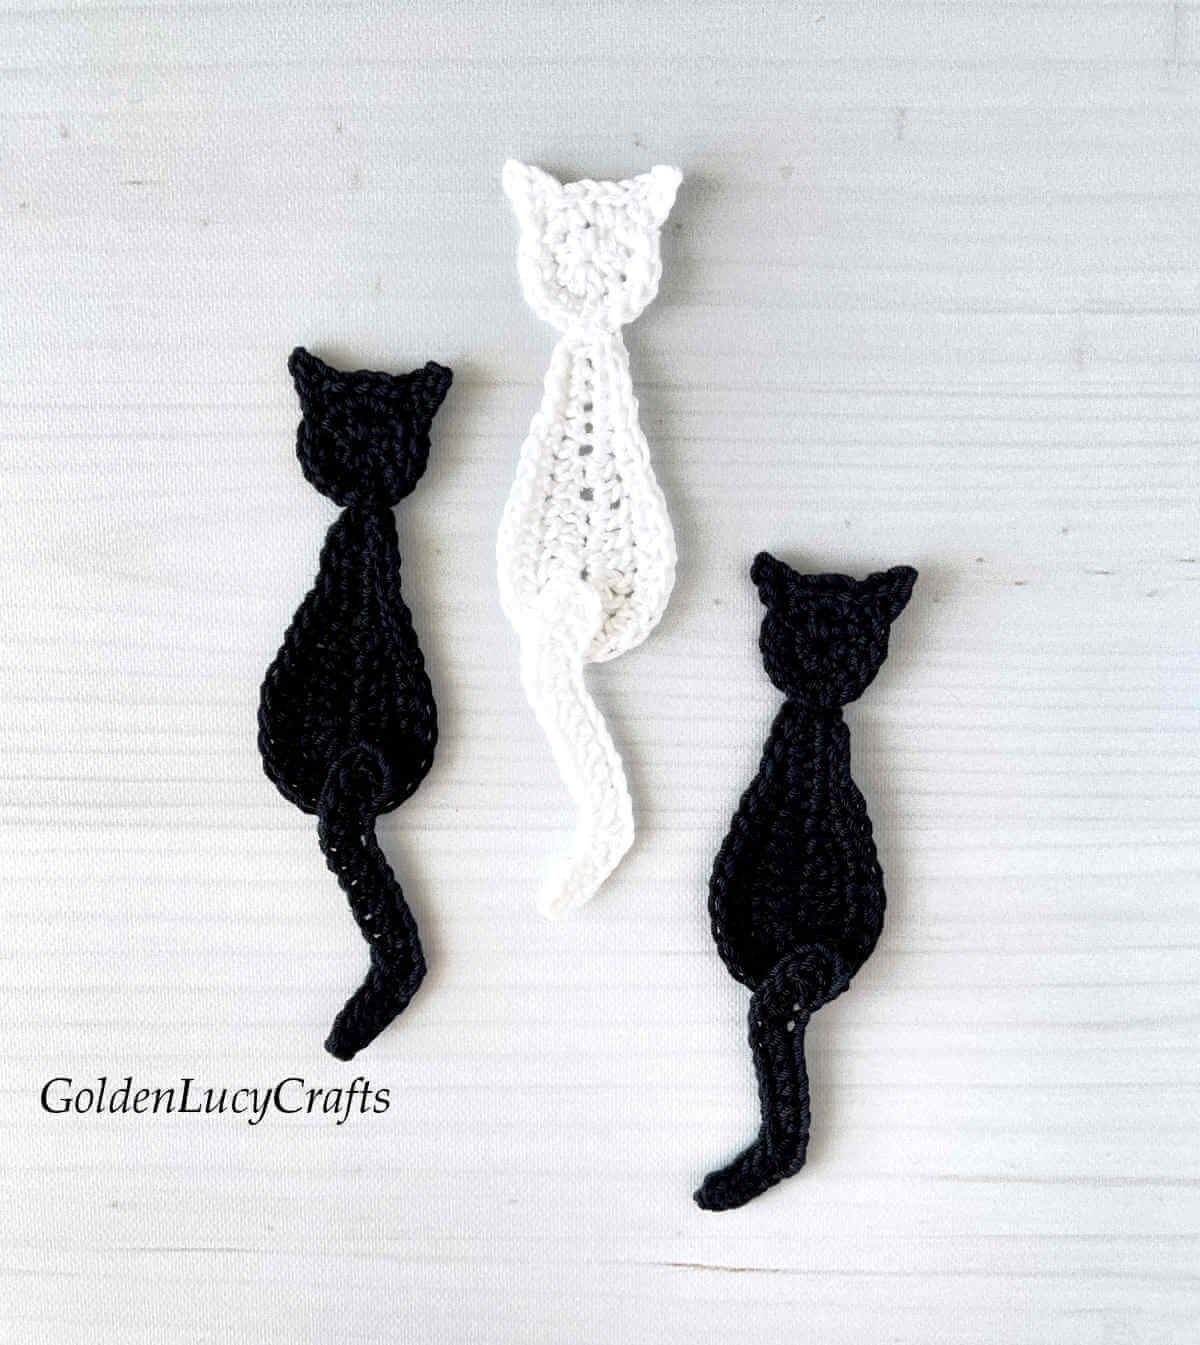 Two black cats and one white cat crochet appliques.